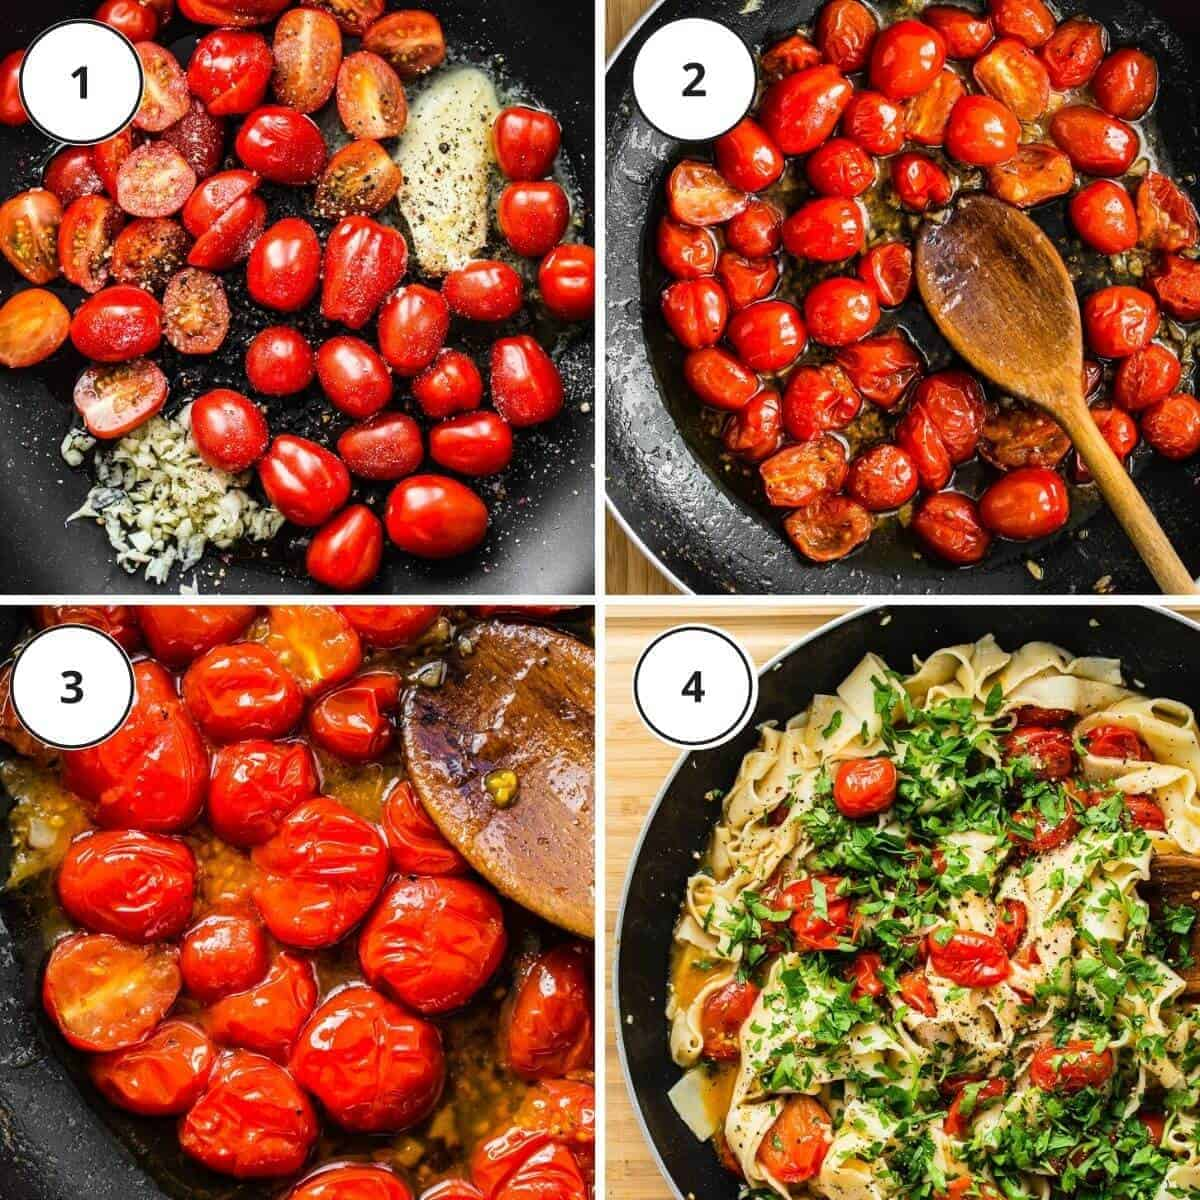 picture steps of written instructions how to ccok the tomatoes